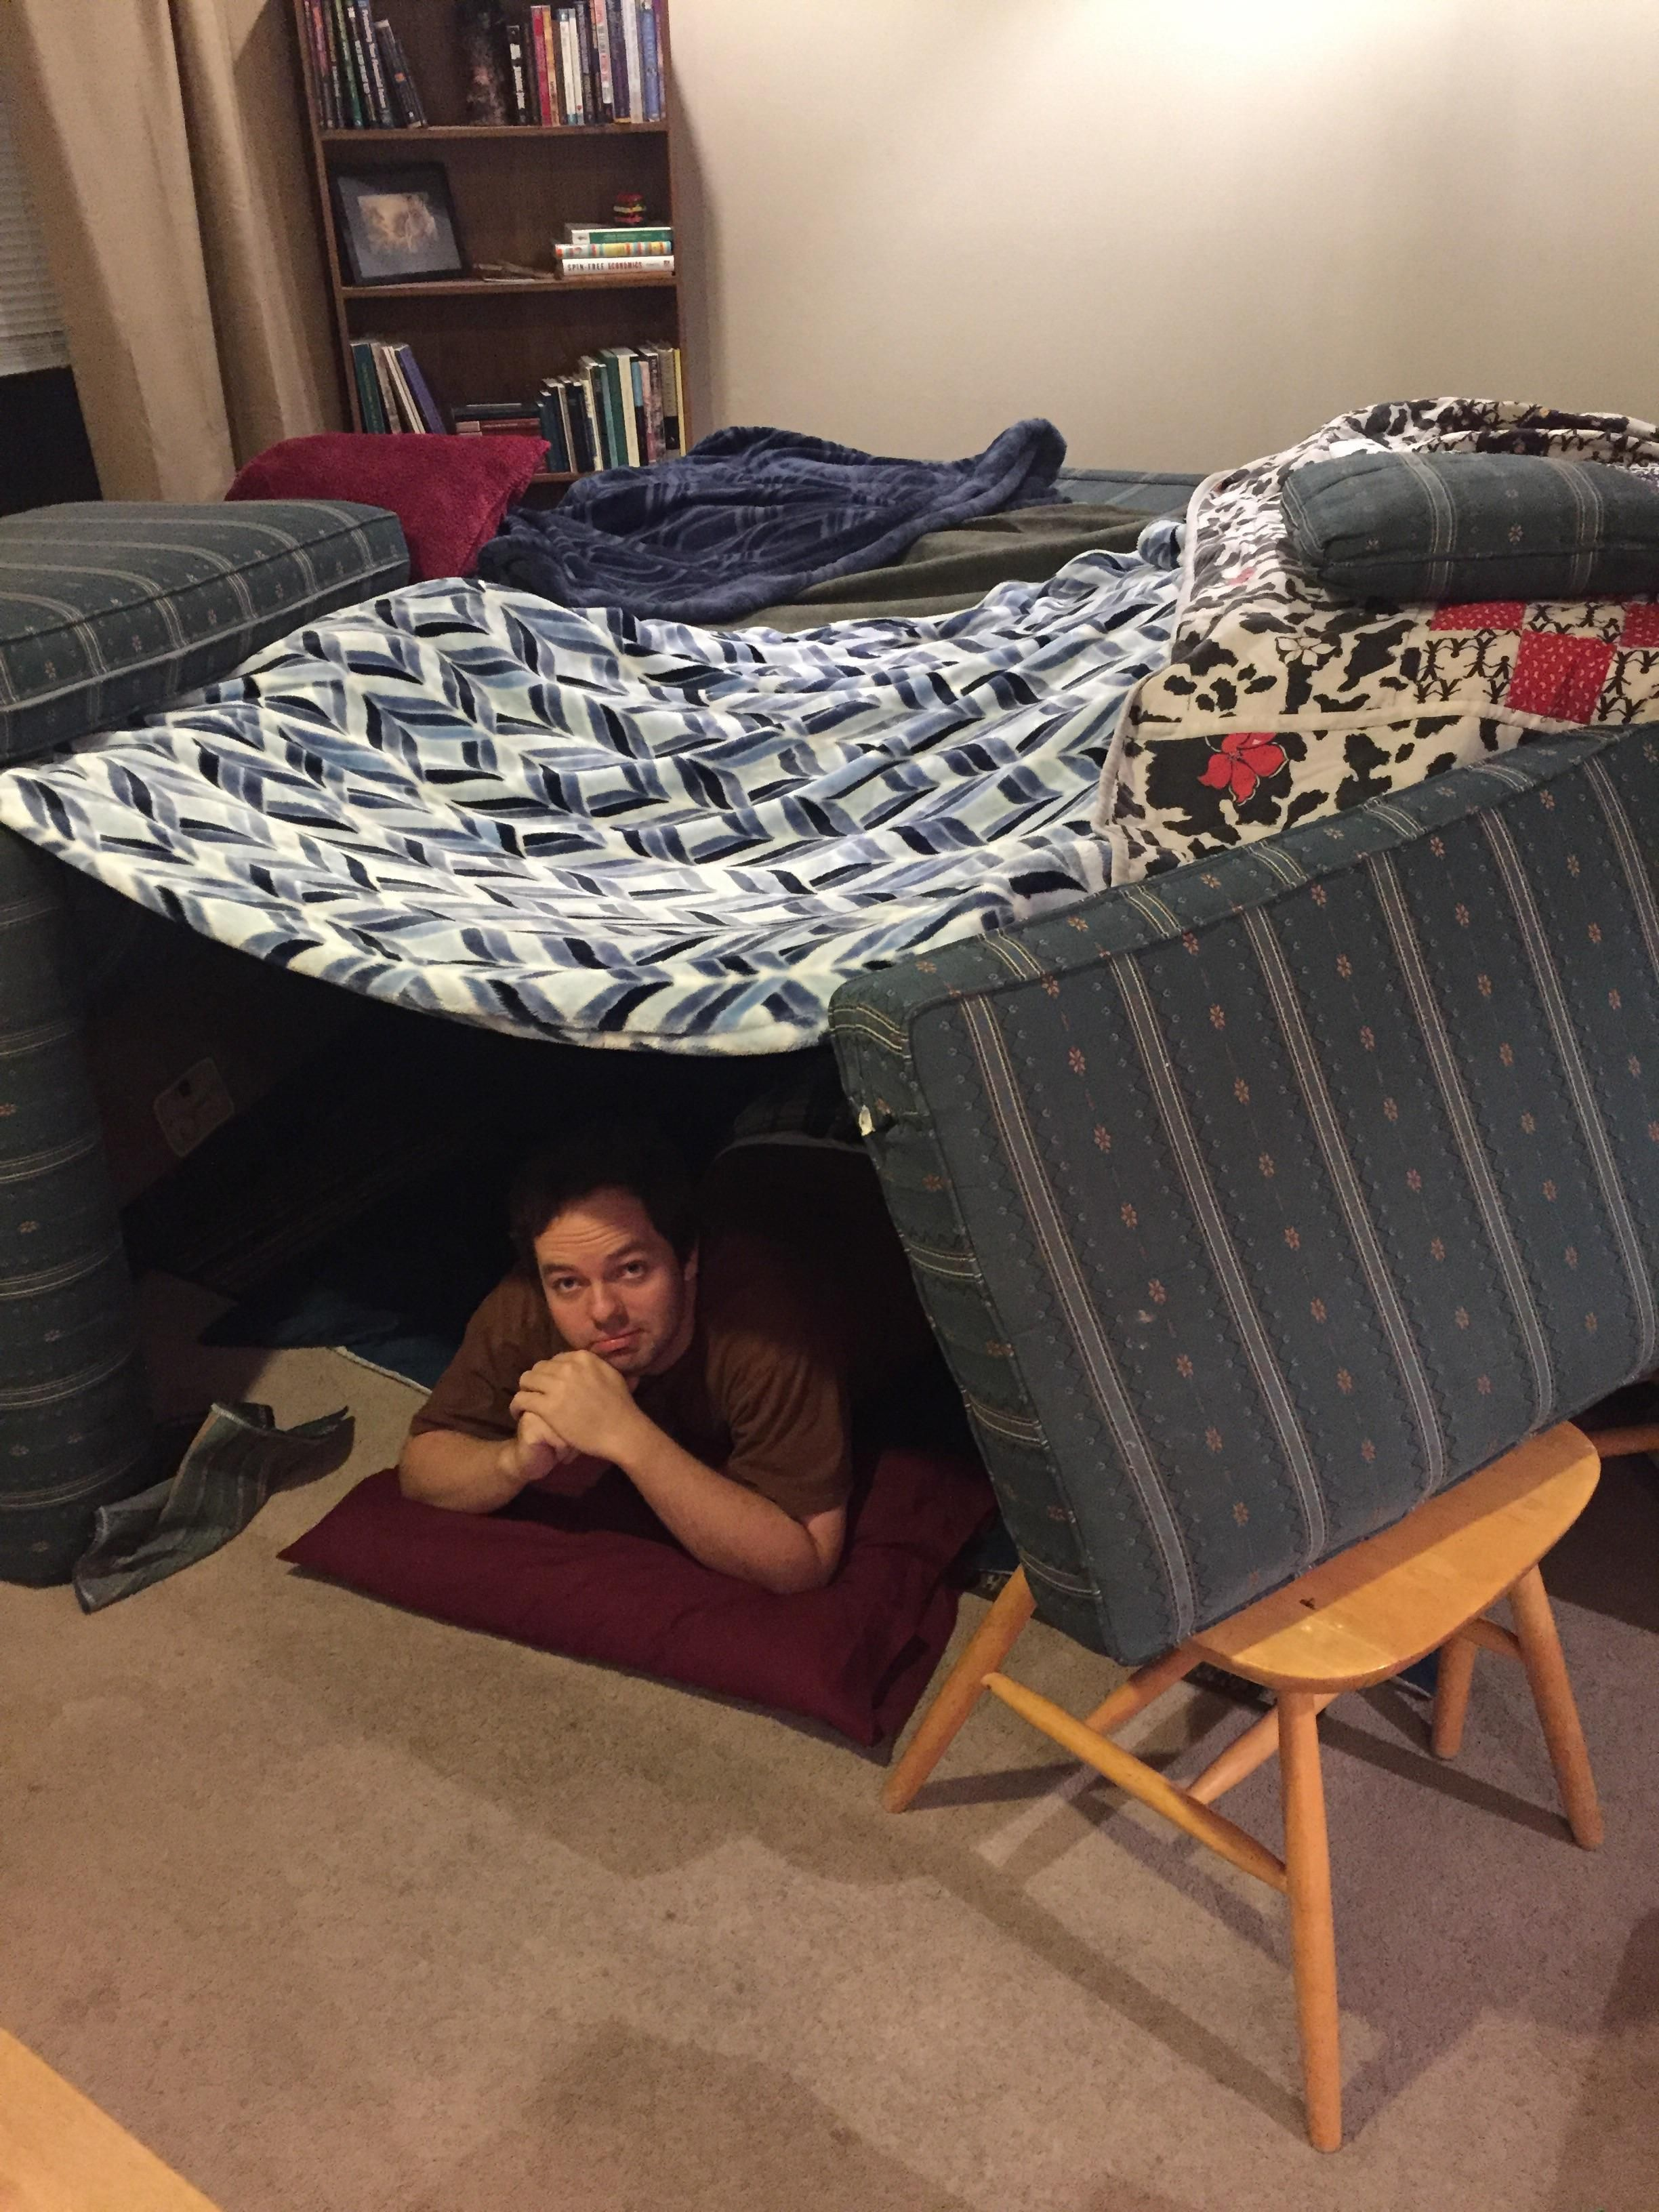 My brother needed a place to stay for the night so I built him a home